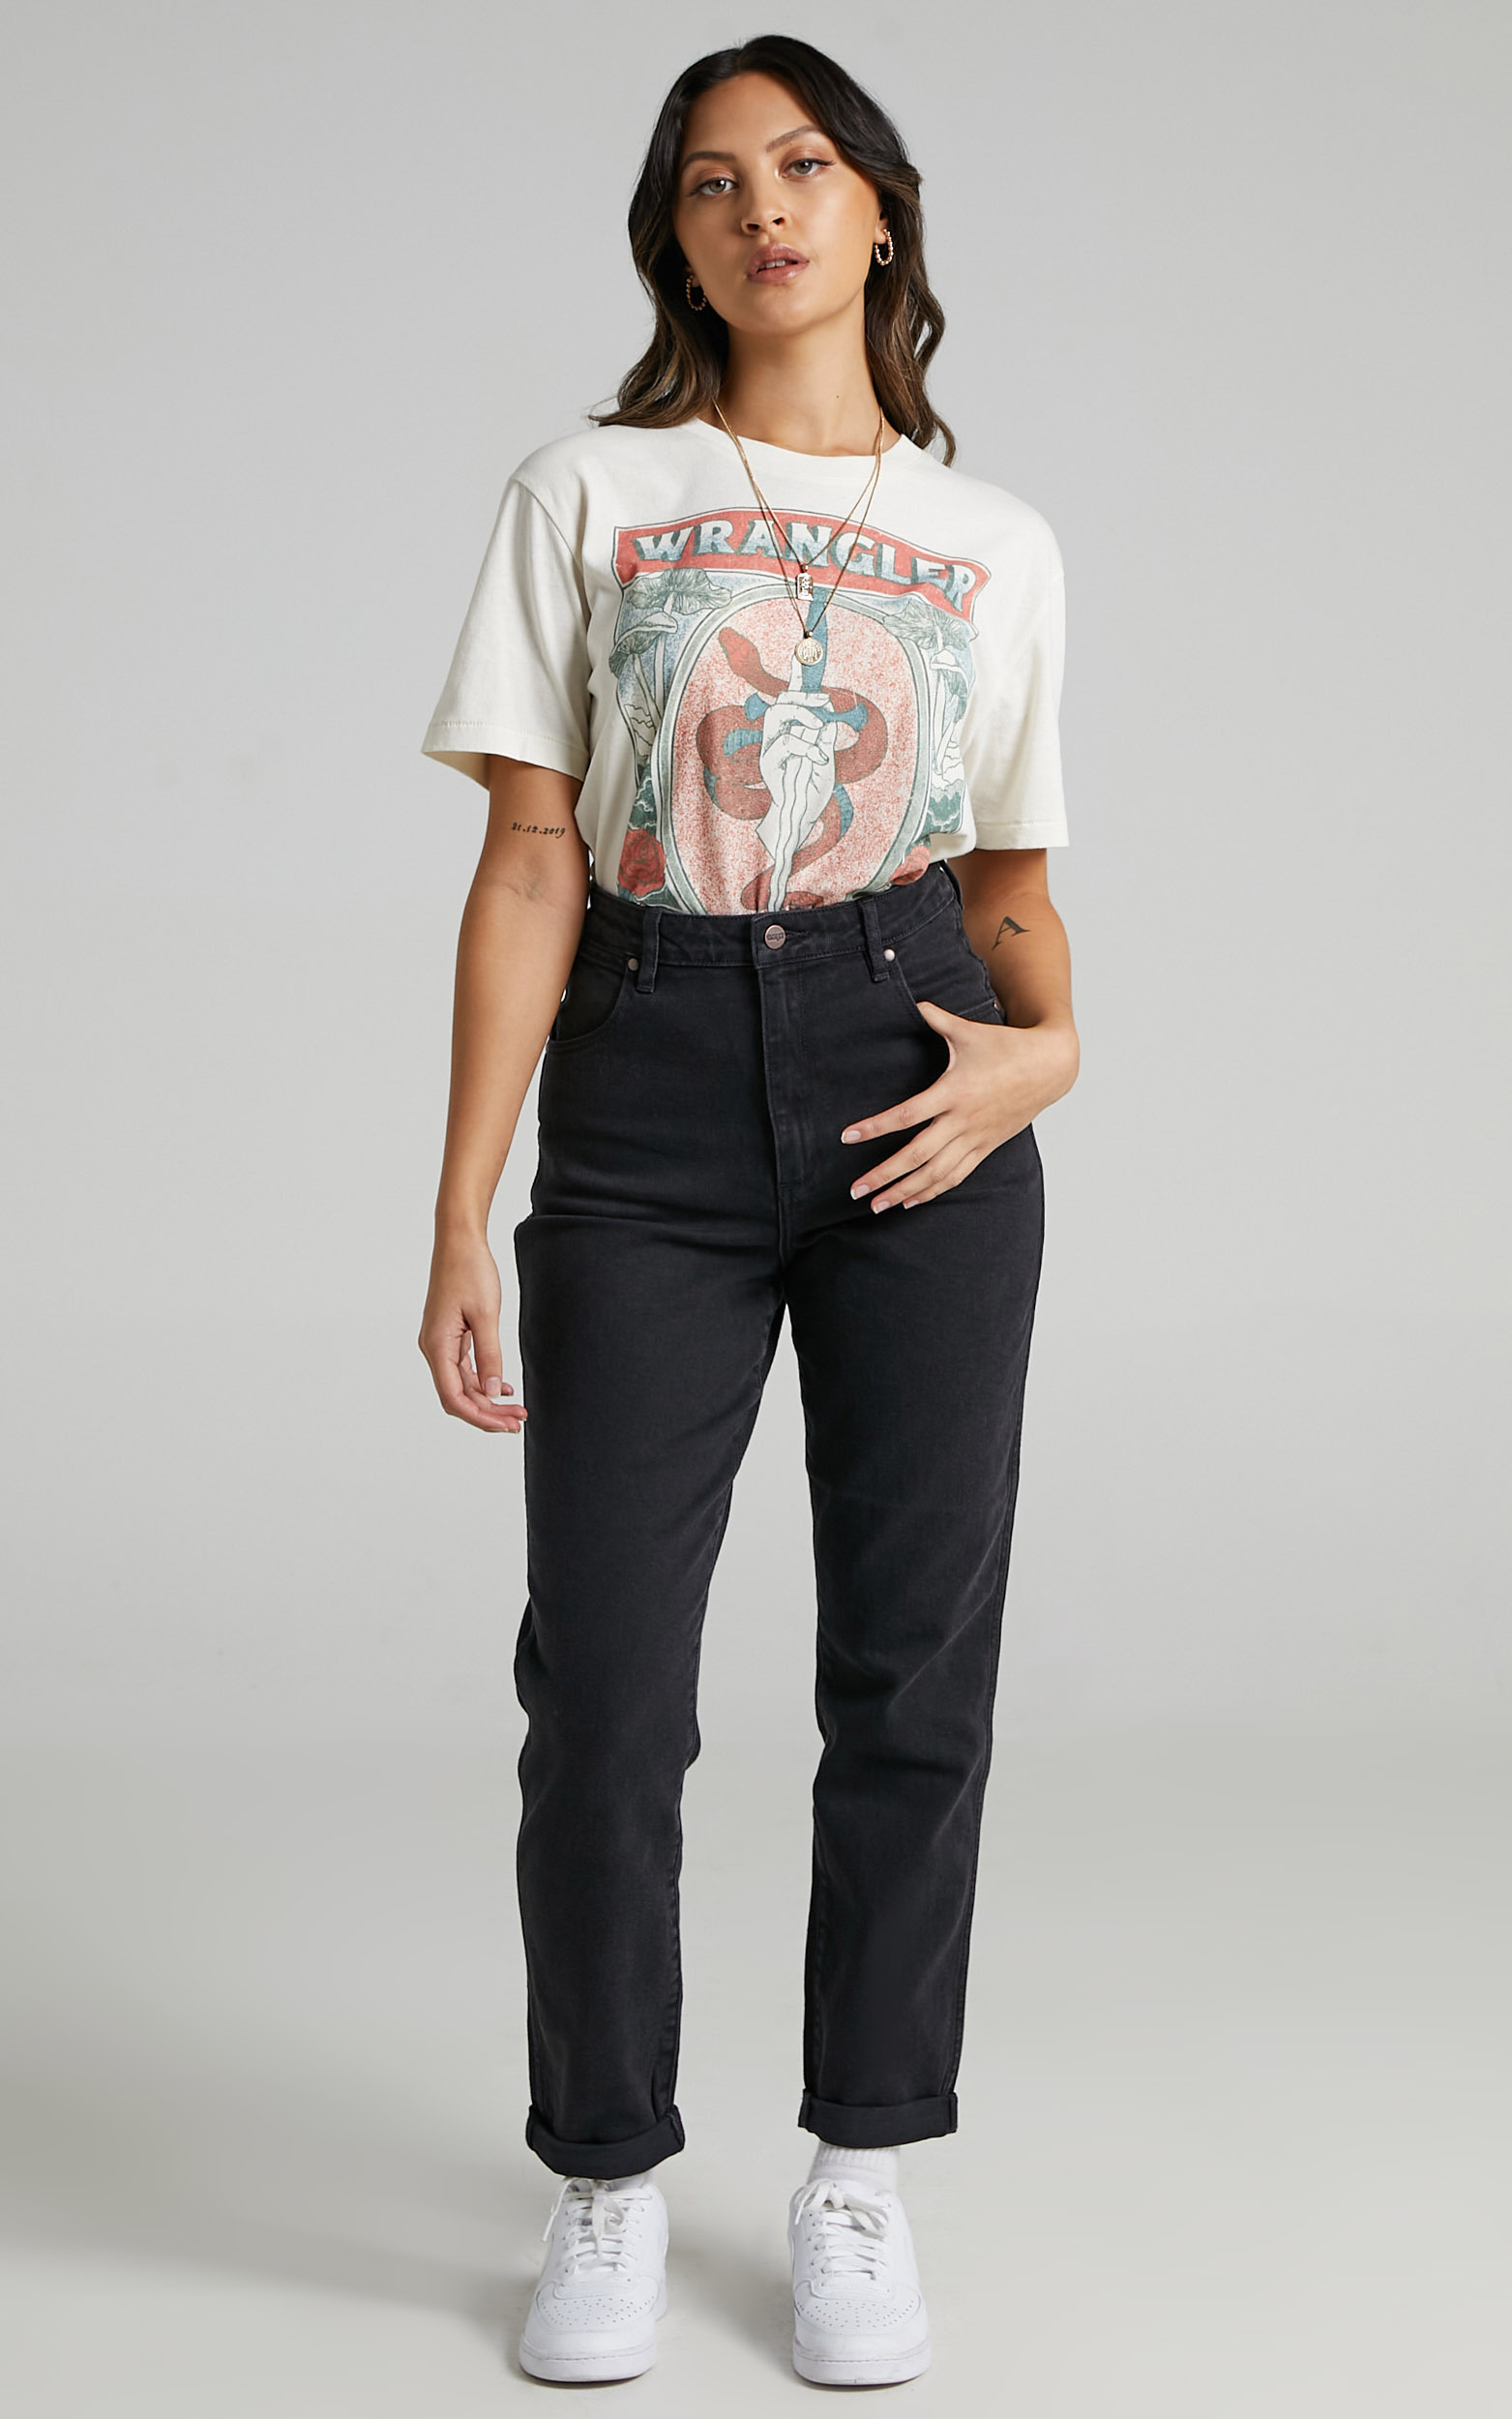 Wrangler - Tyler Jean in Midnight Stone - 06, BLK1, hi-res image number null